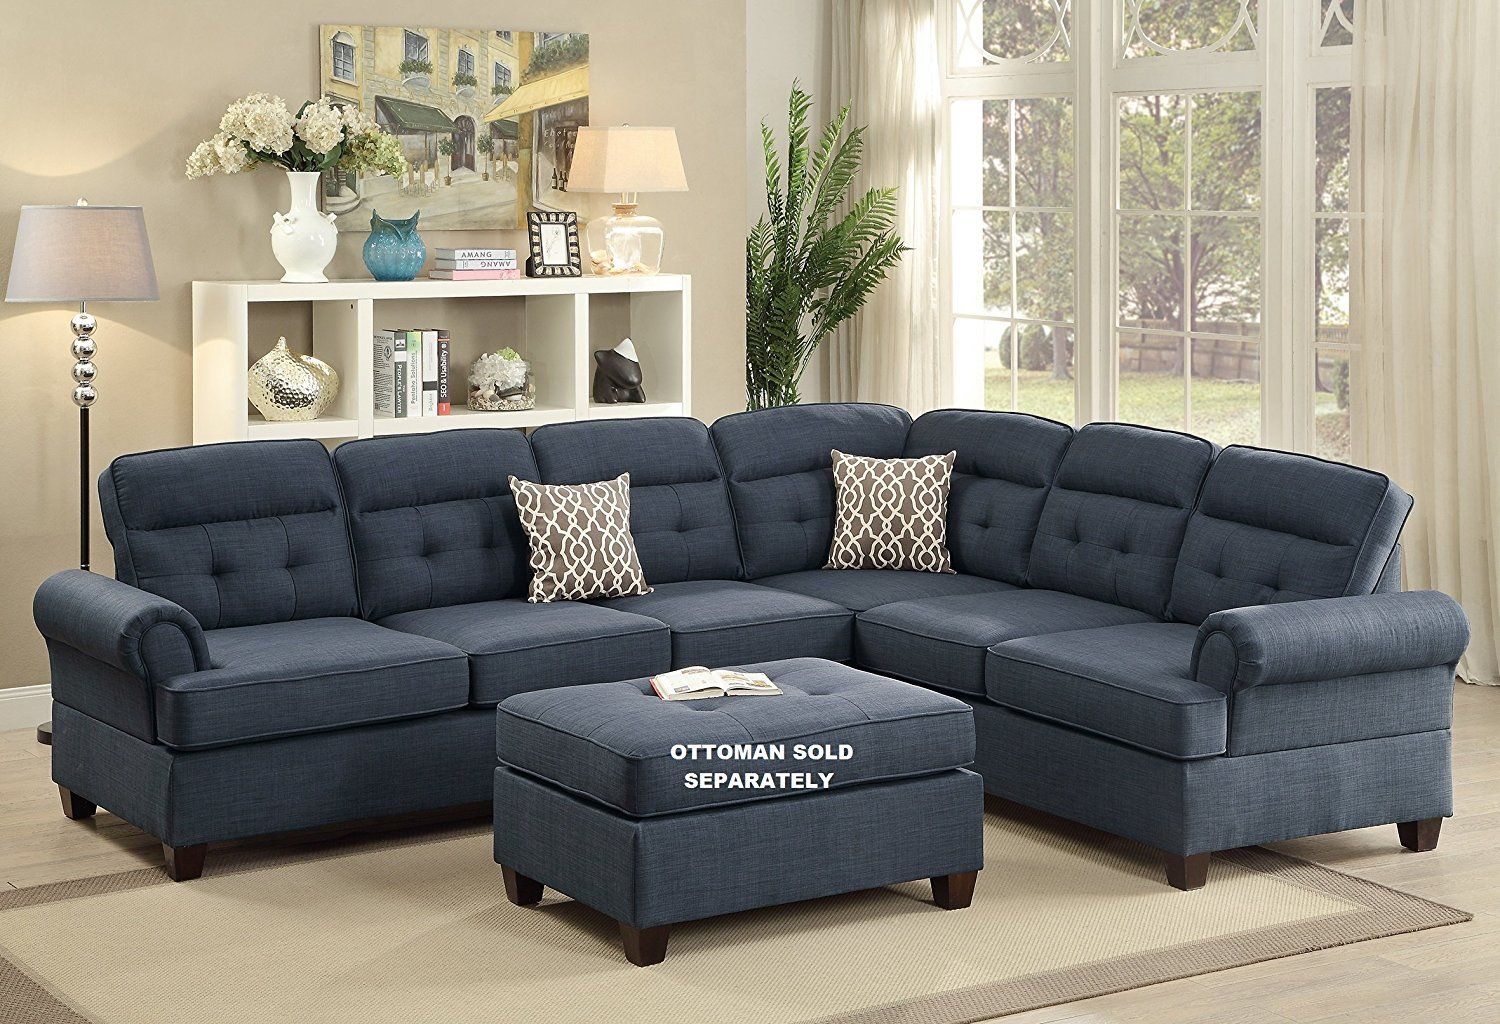 996 Amazon Com Tynan 2 Pieces Sectional Sofa Set Upholstered In Dark Blue Dorris Fabric Fabric Sectional Sofas Sectional Sofa Couch Cheap Living Room Sets